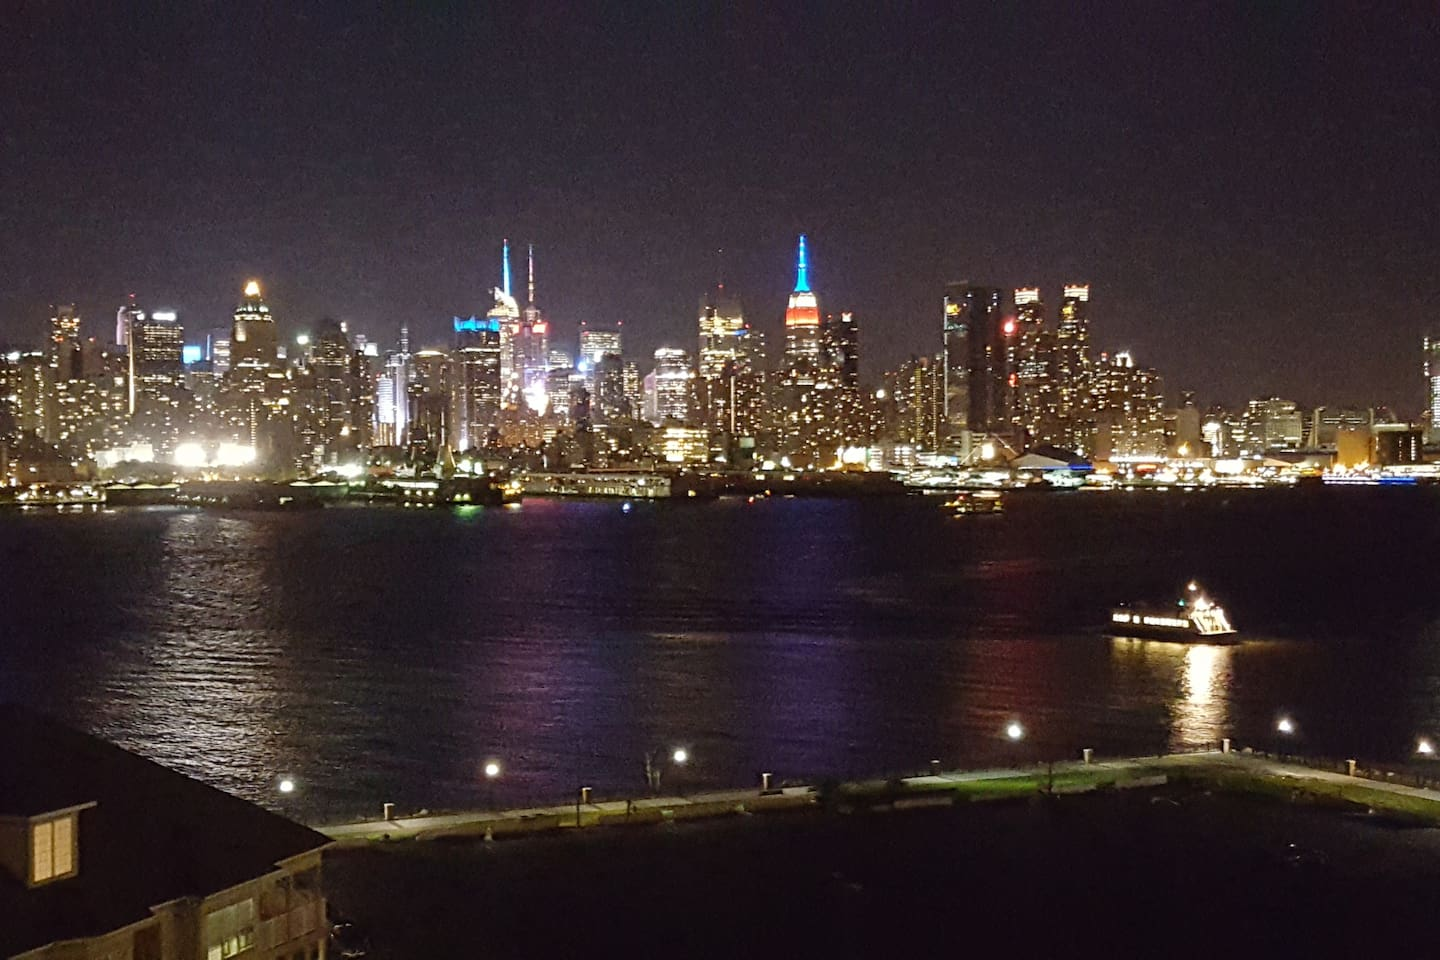 The amazing night time view of midtown Manhattan from our living room window!